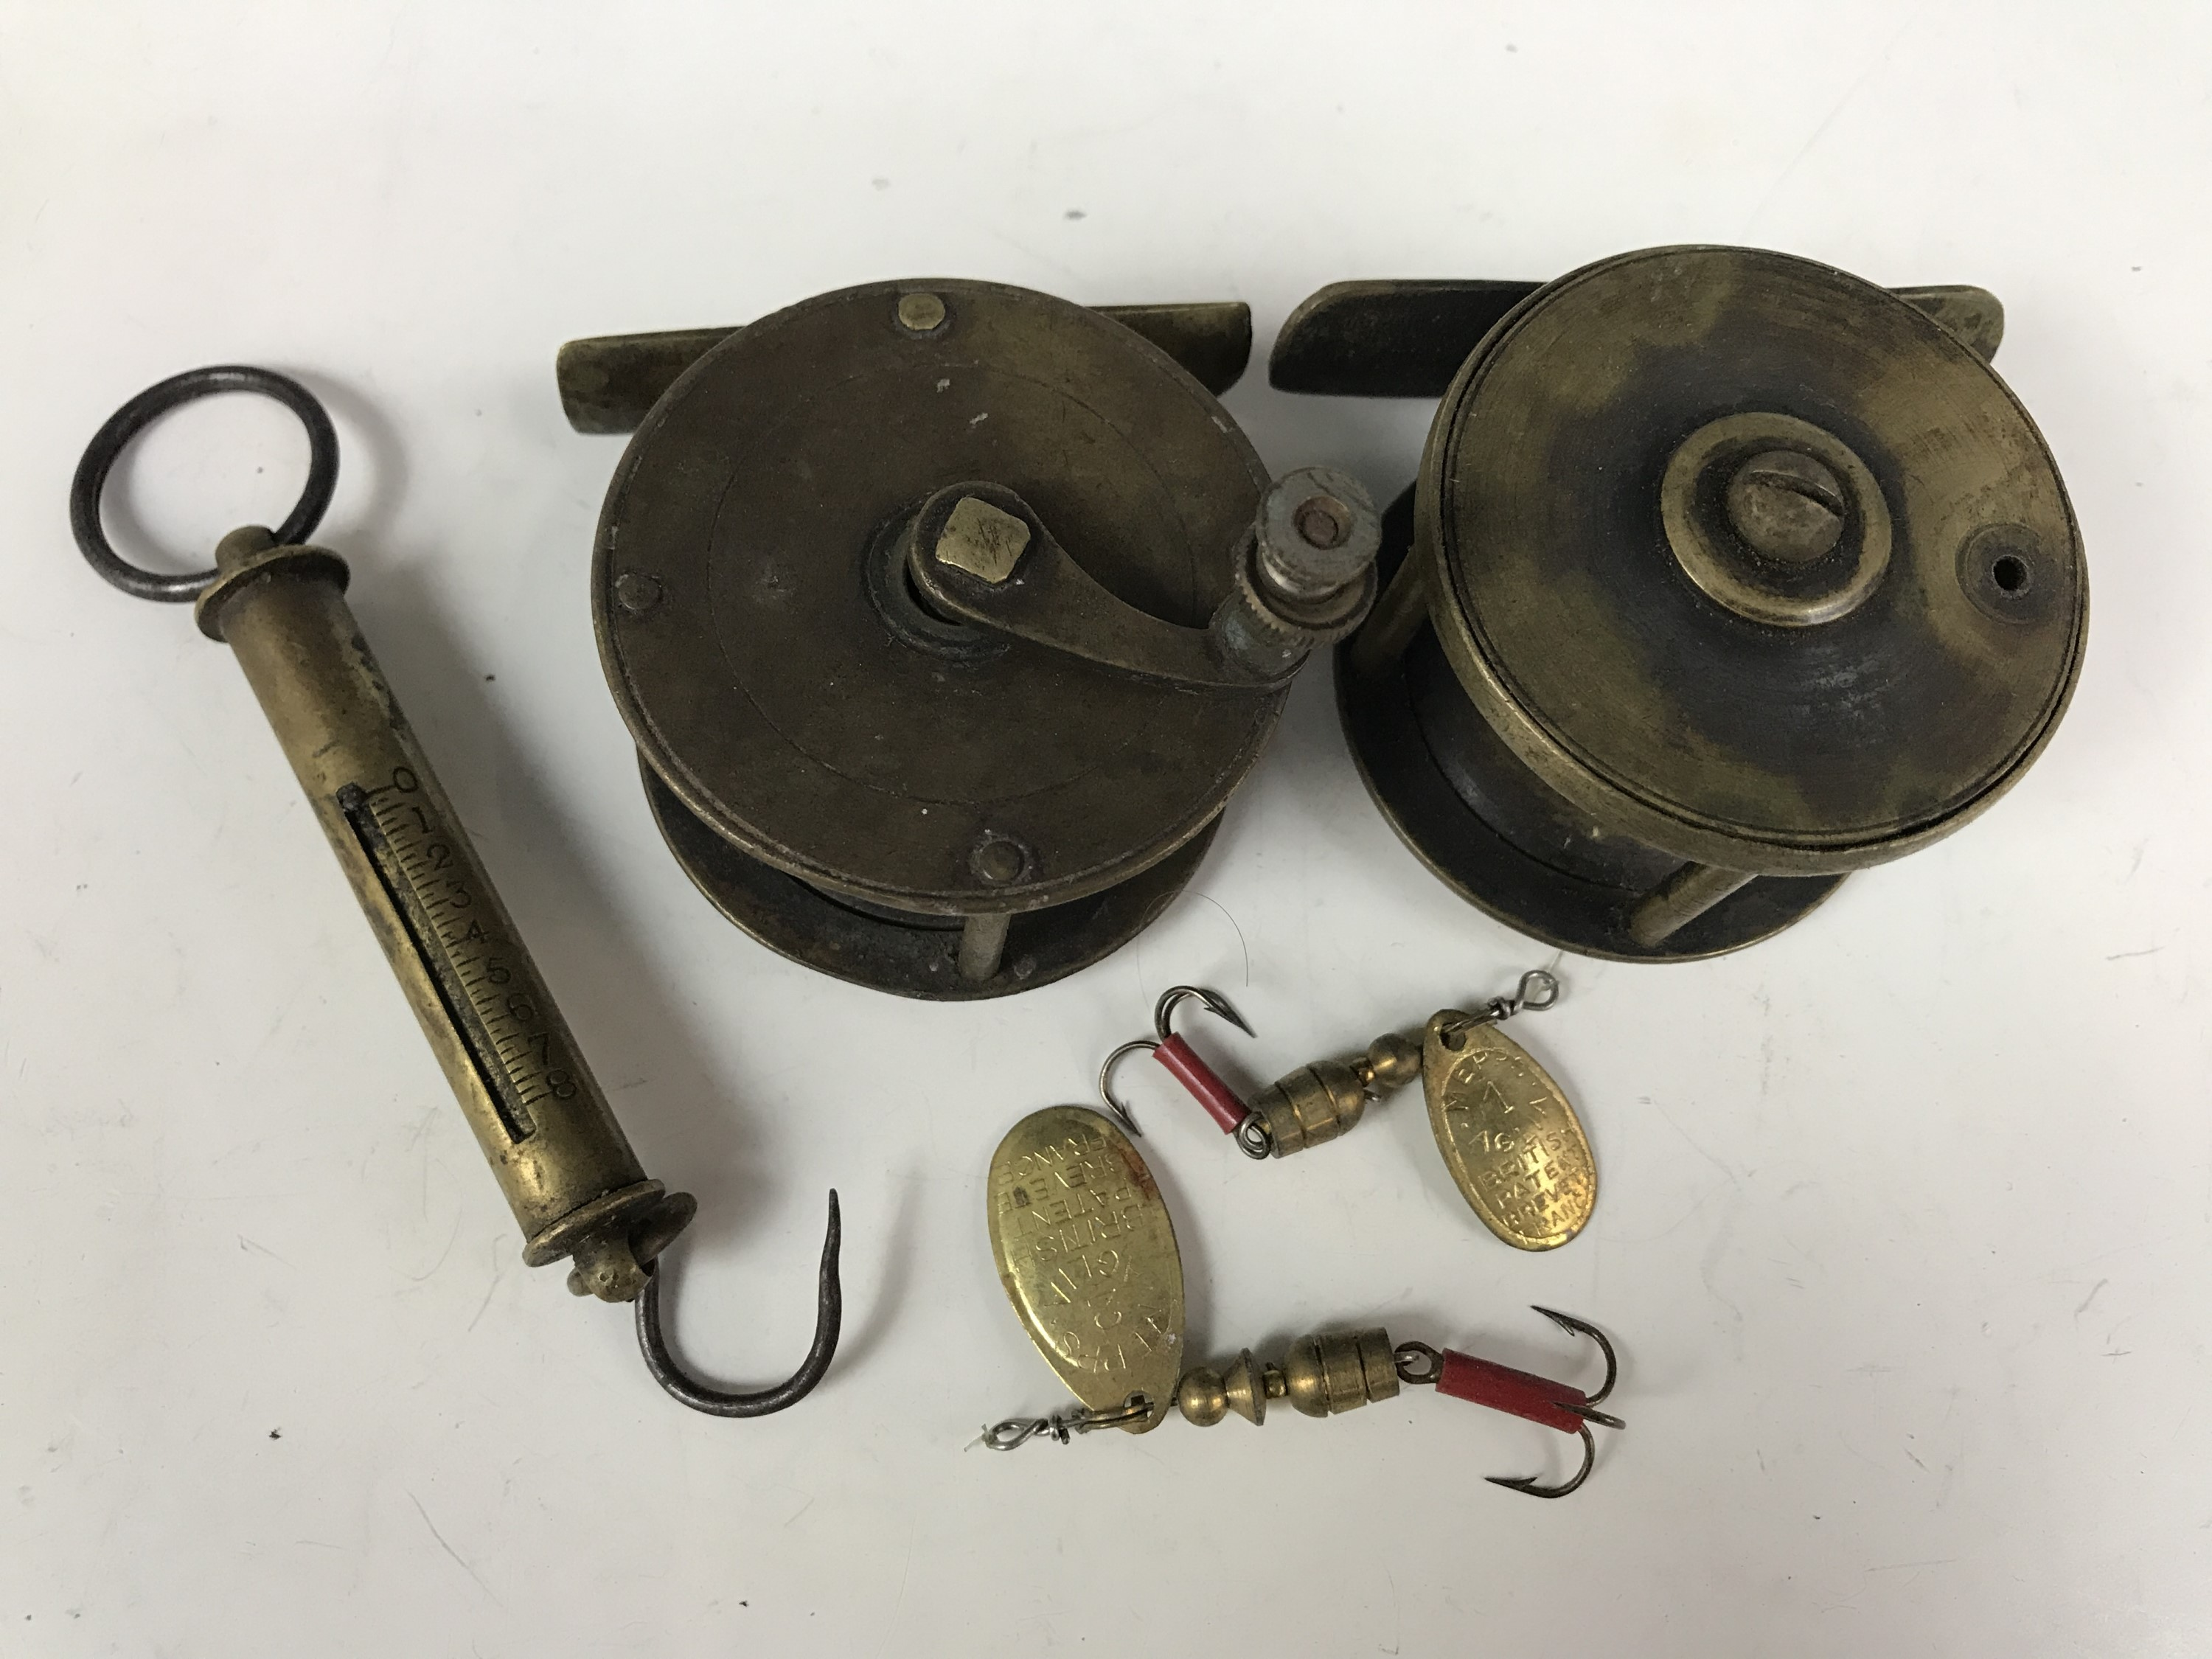 Lot 52 - Two vintage small brass fishing reels together with a brass spring balance and two Mepps spinners